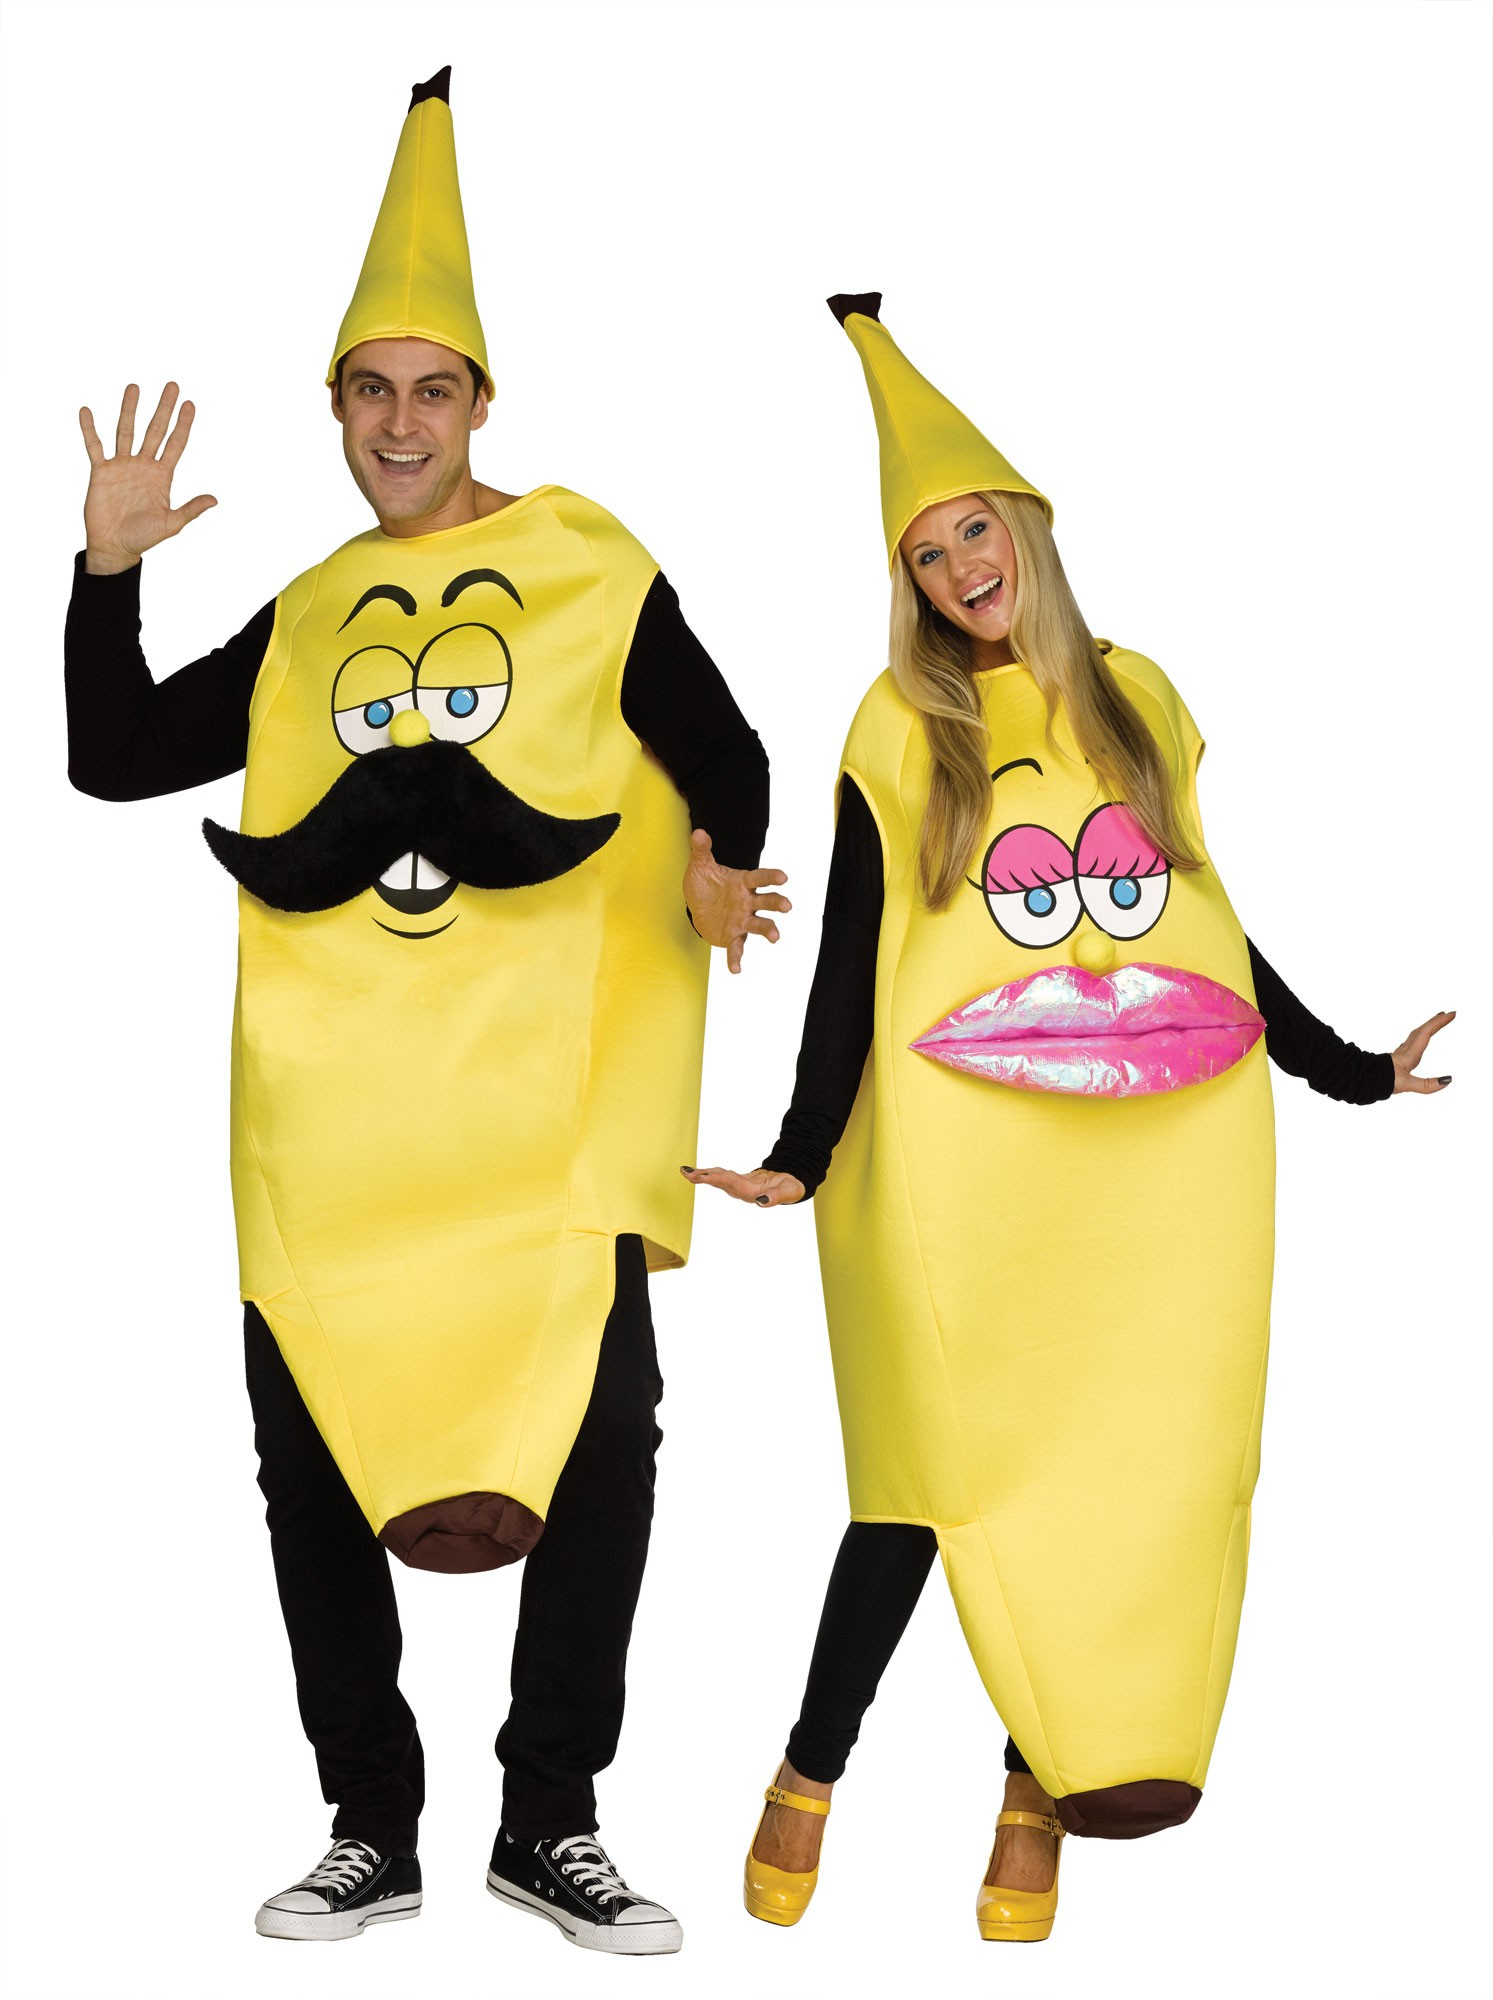 Sentinel Mr and Mrs Banana Adults Fancy Dress Pair Couple Food Womens Ladies Mens Costume  sc 1 st  eBay & Mr and Mrs Banana Adults Fancy Dress Pair Couple Food Womens Ladies ...